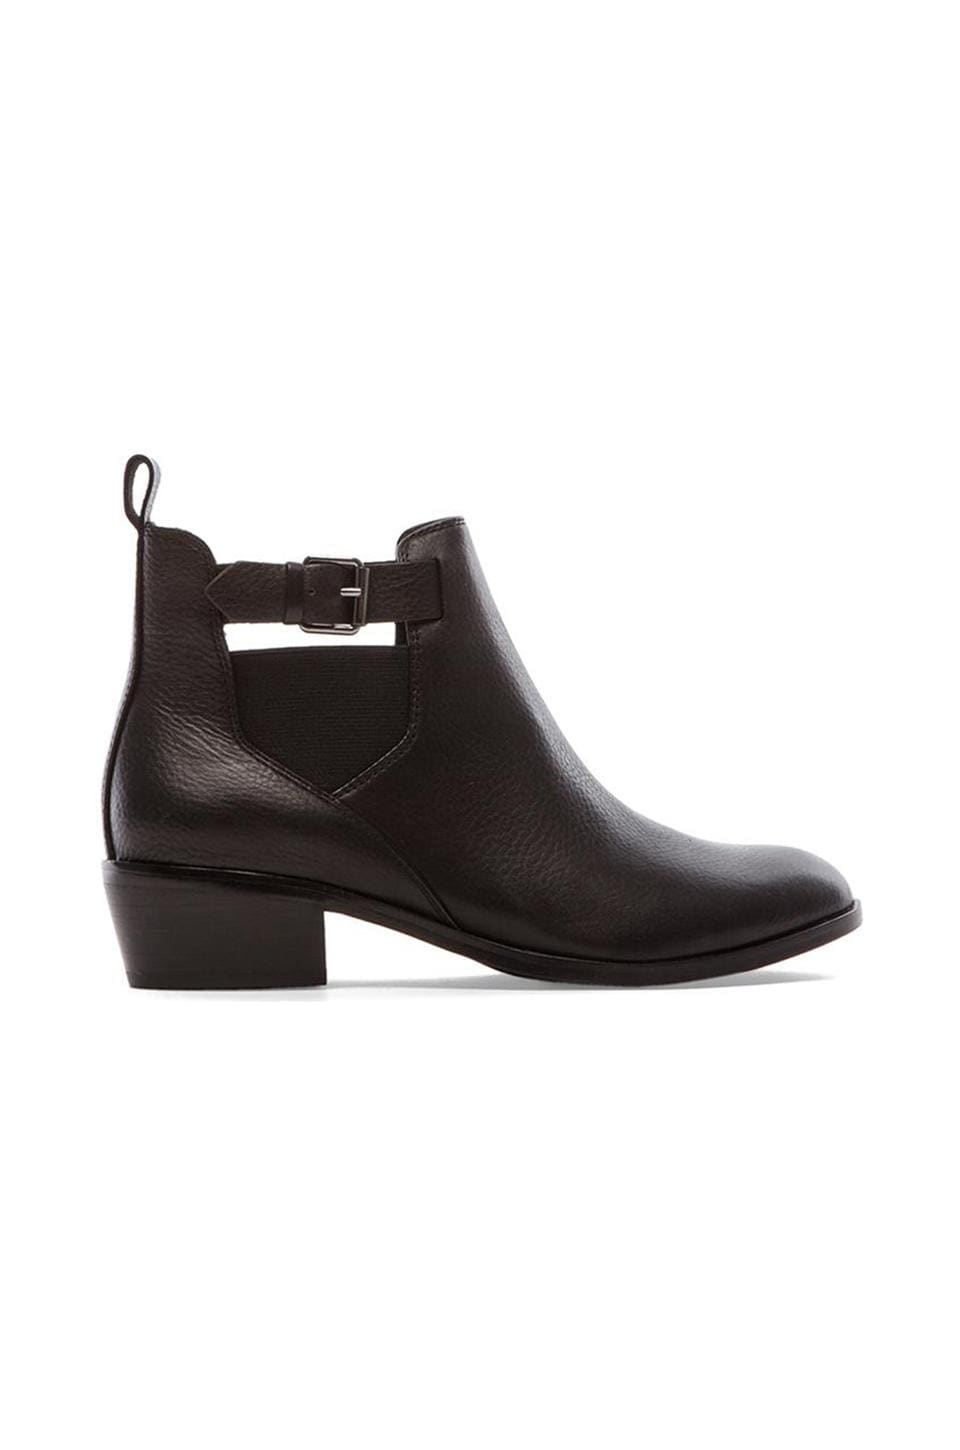 Splendid Hilltop Booties in Black